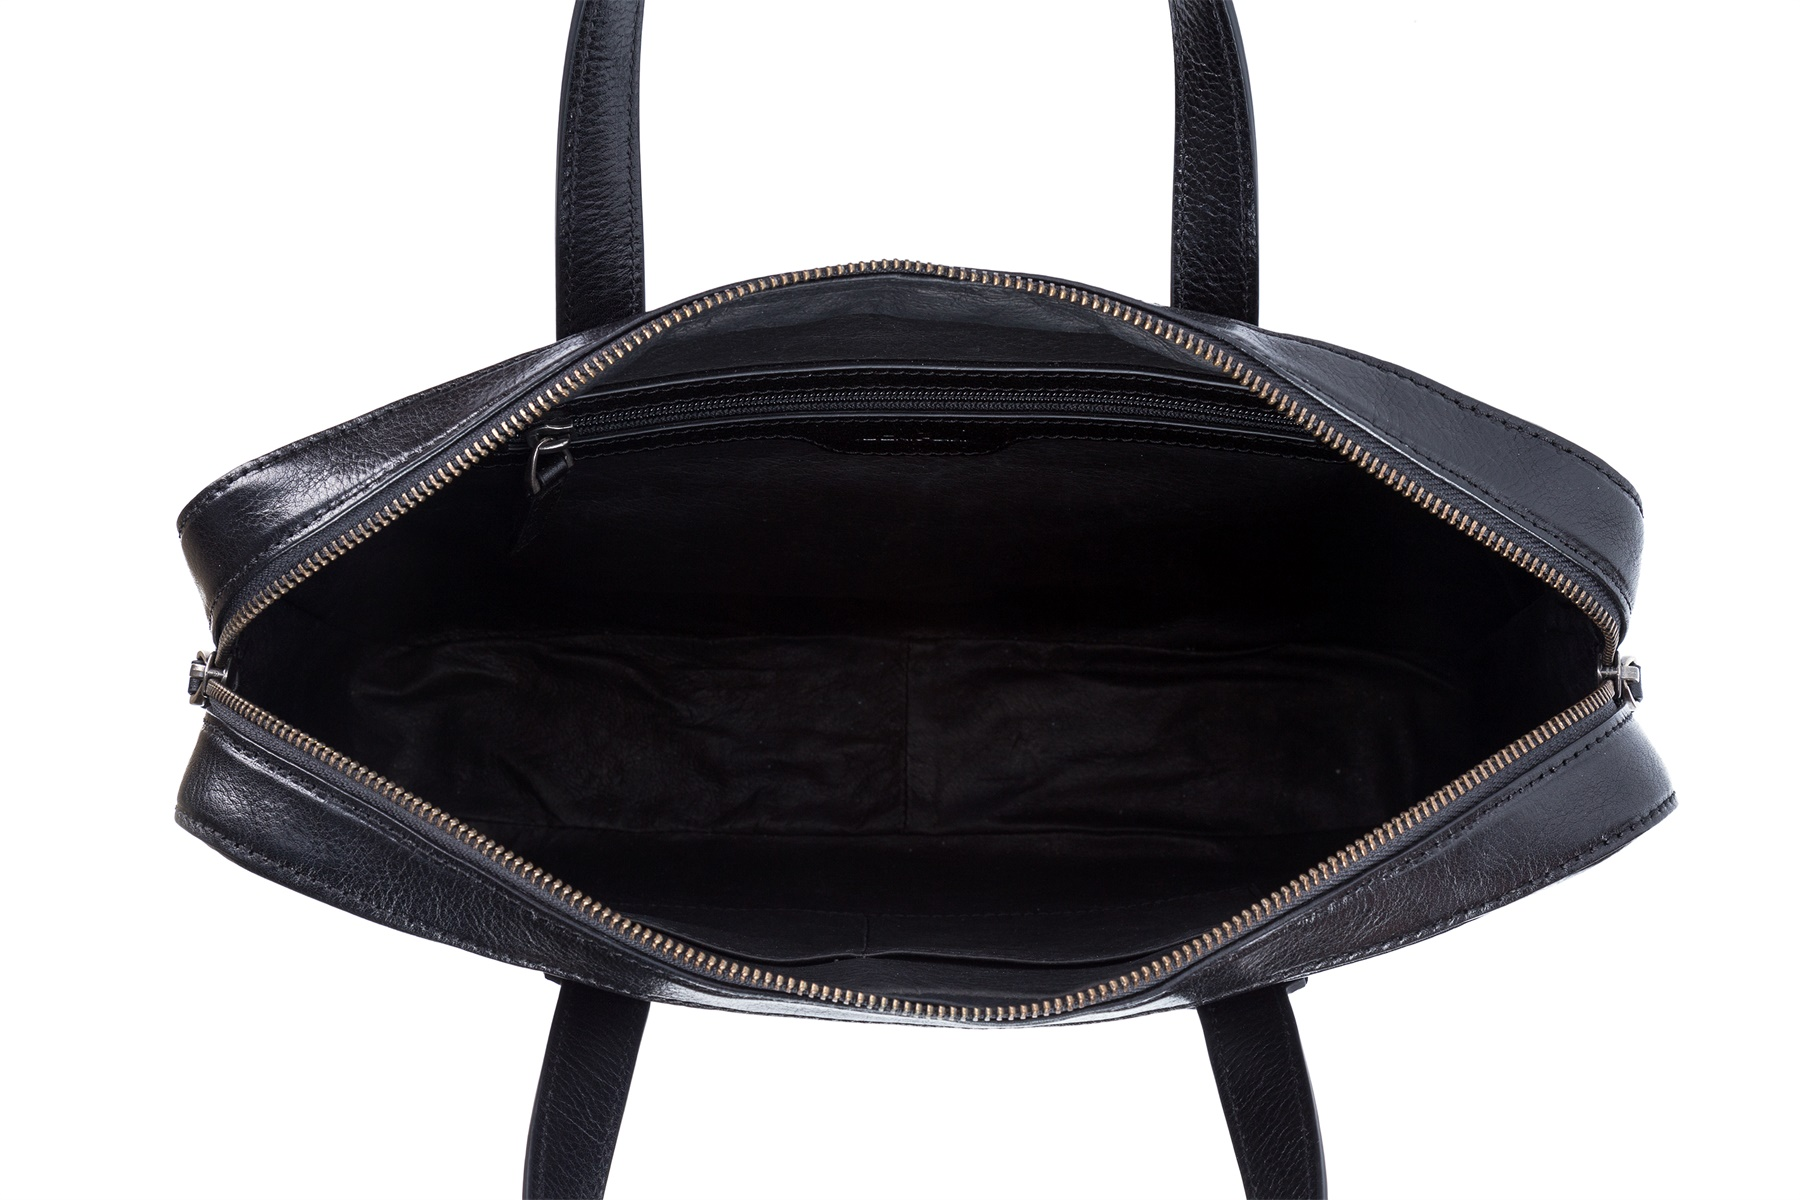 video-genuine leather briefcase bag genuine pattern for man-GF bags-img-1